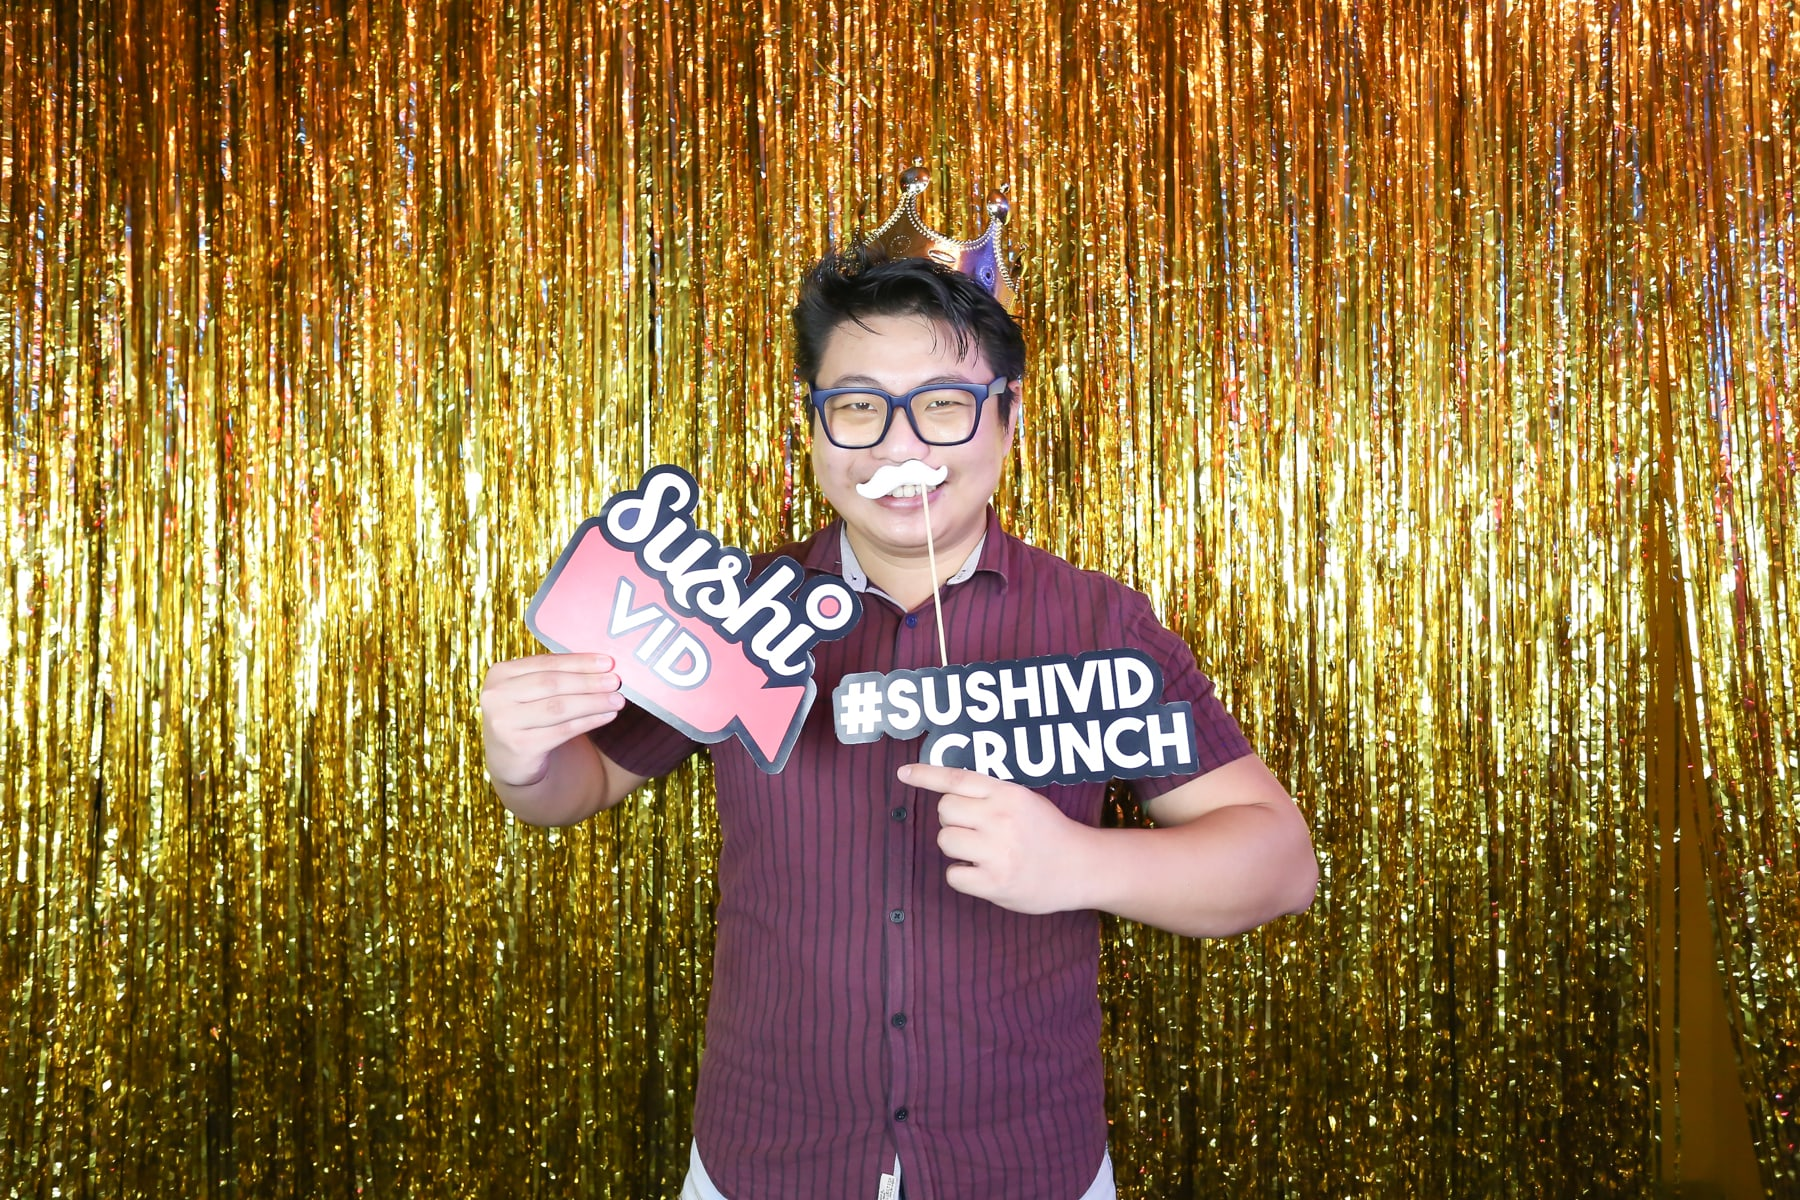 Sushivid+crunch+tagbooth+156